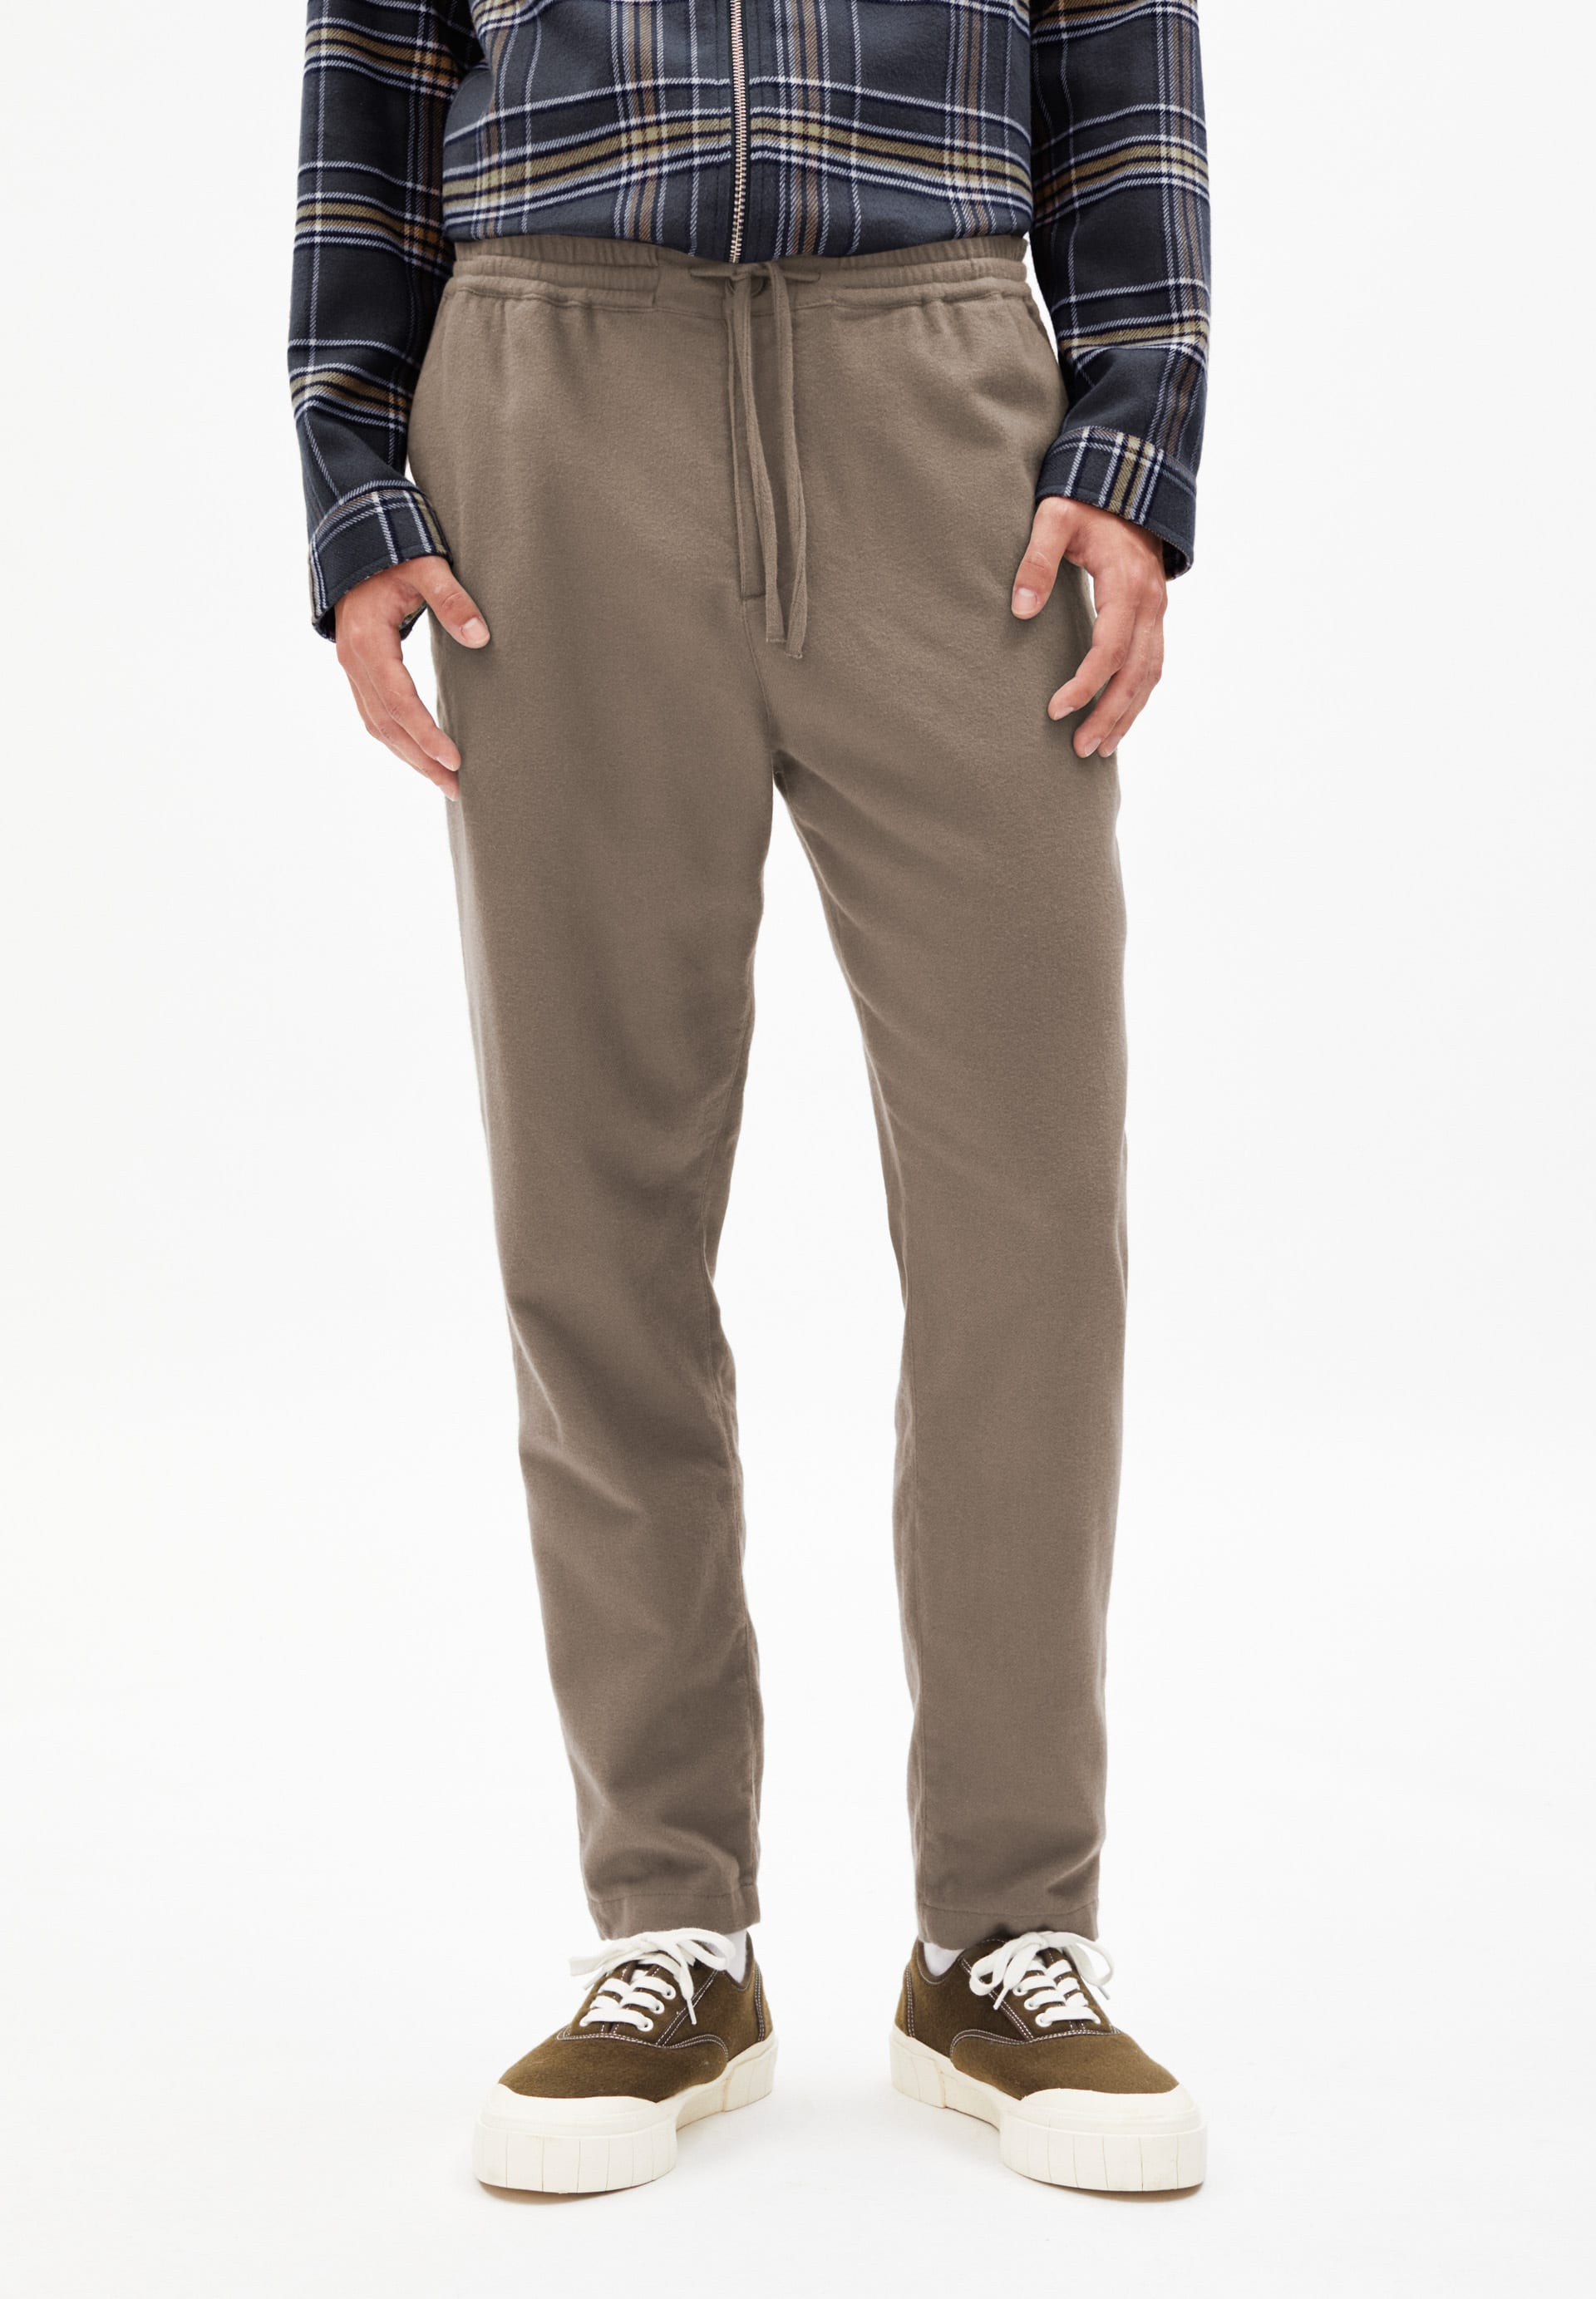 LUCAAS FLANNEL Pants made of organic cotton